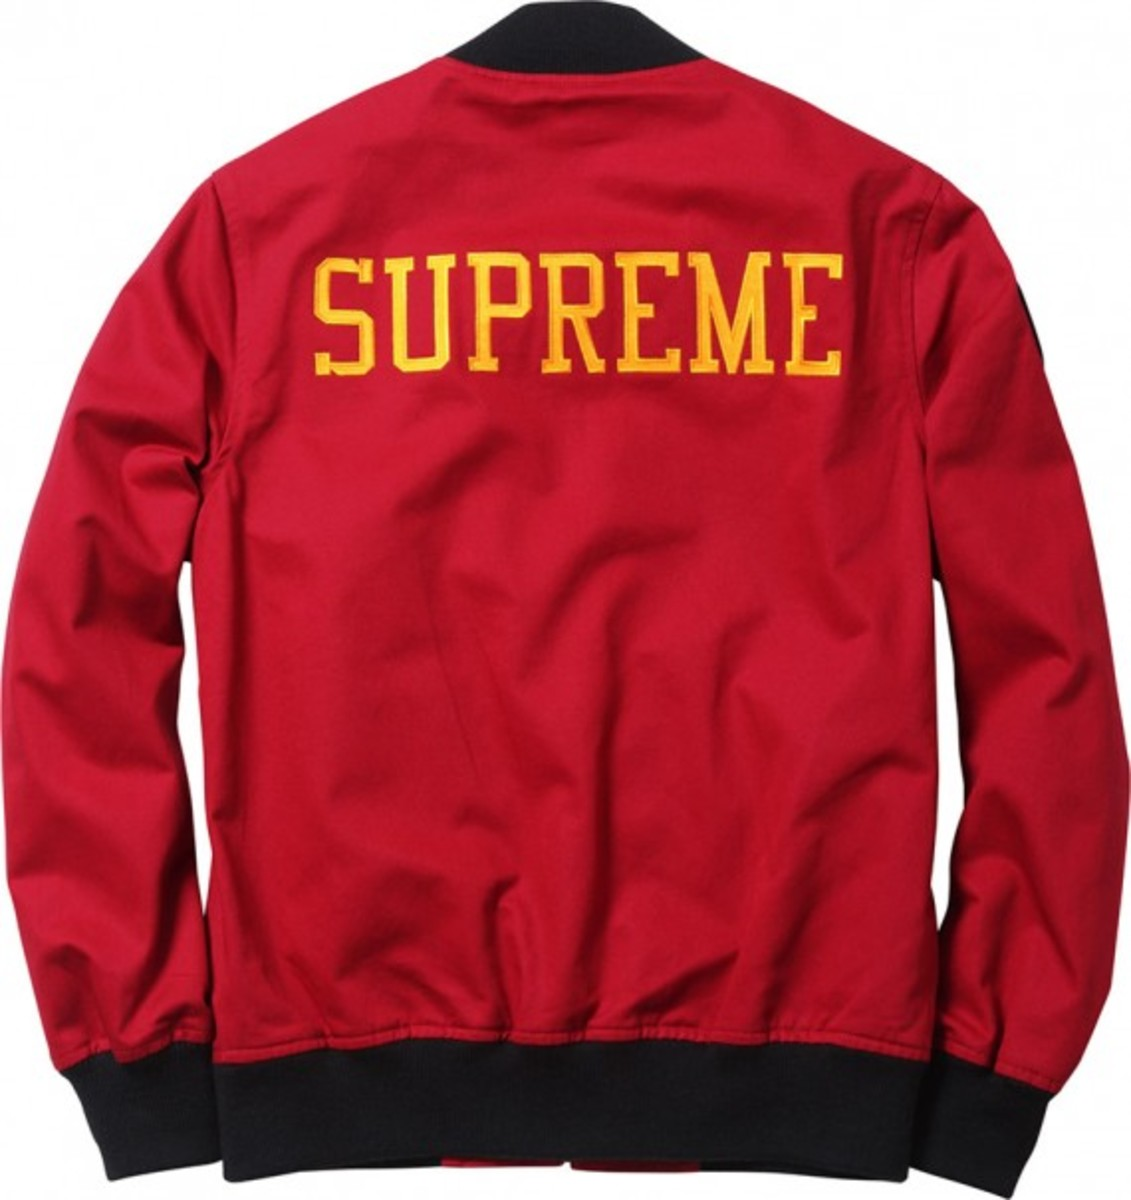 supreme-spring-summer-2013-outerwear-collection-43